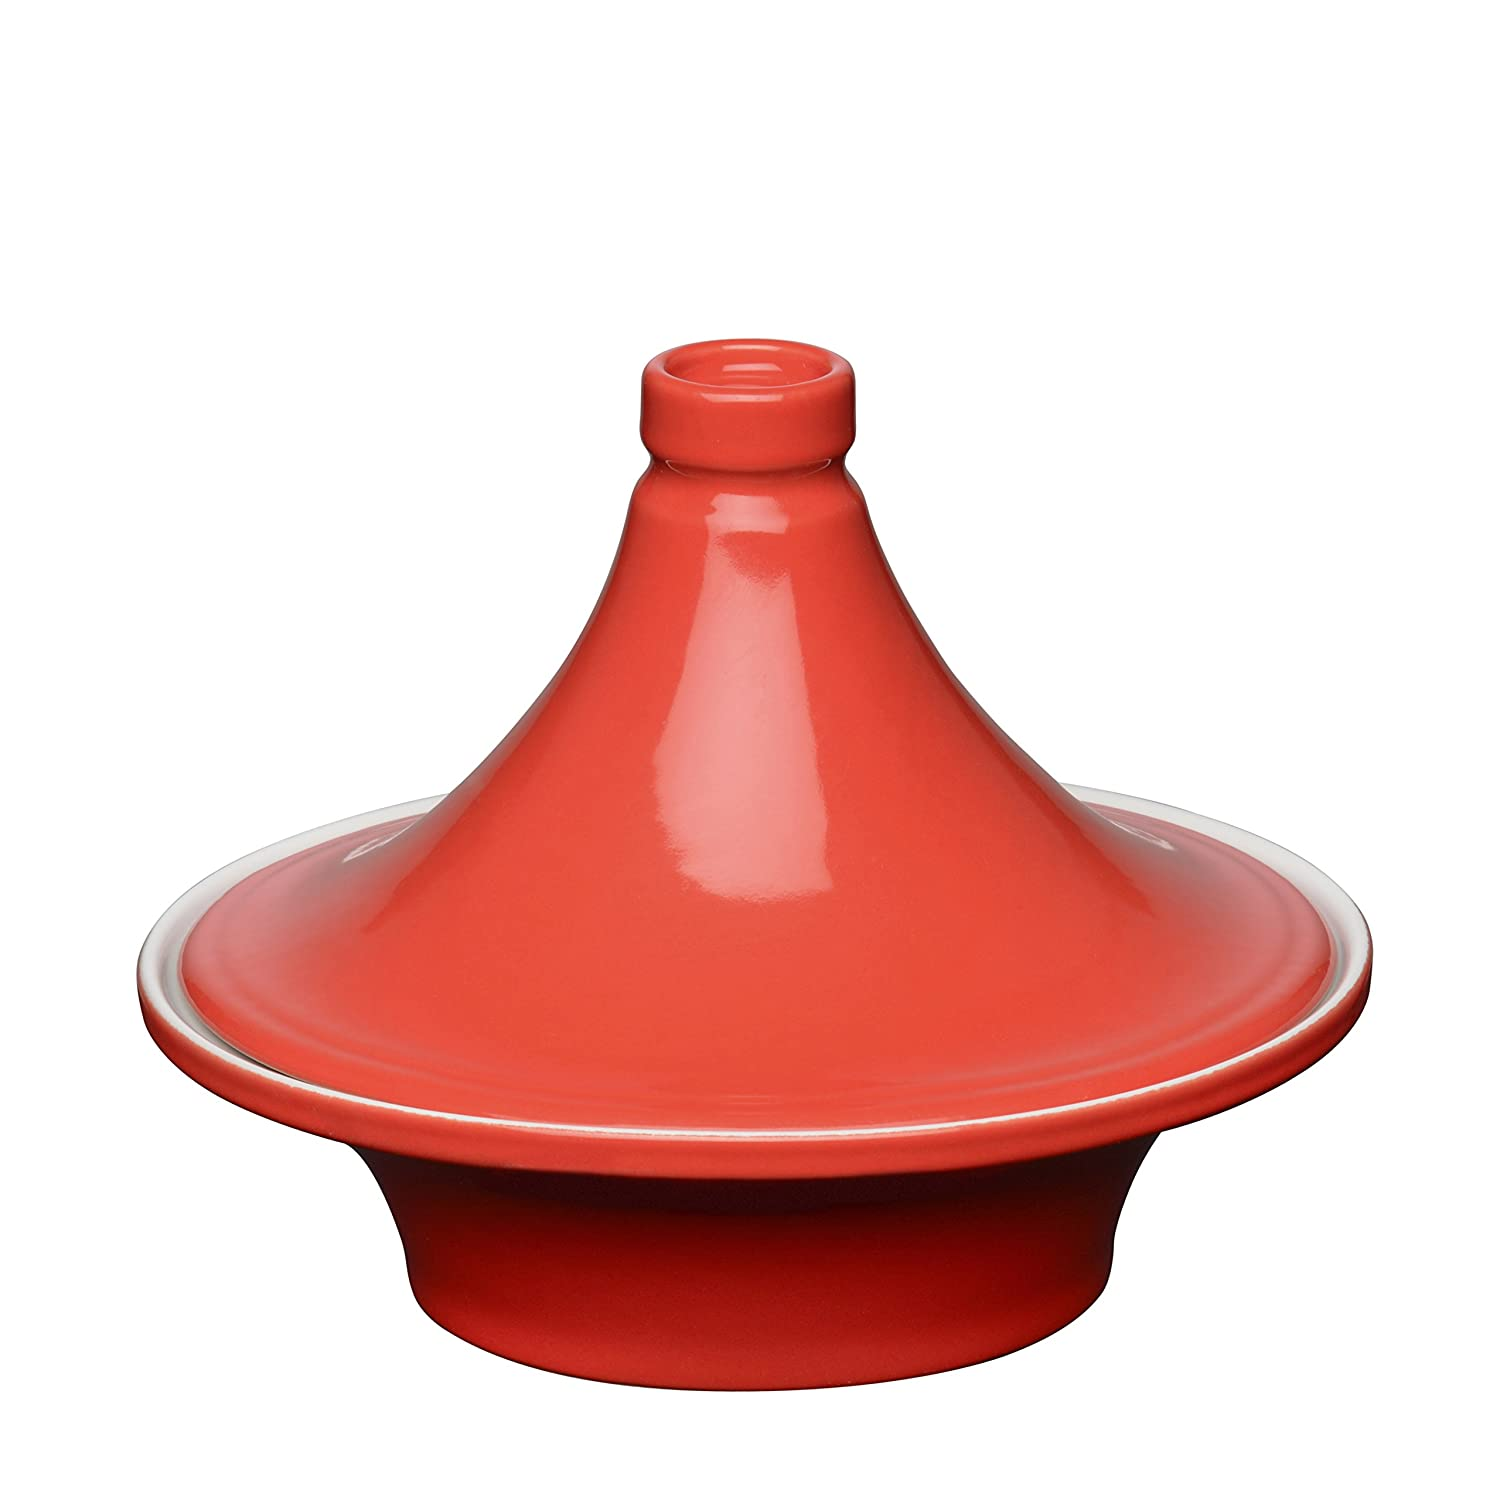 Premier Housewares OvenLove Tagine, Small, Red 0104433